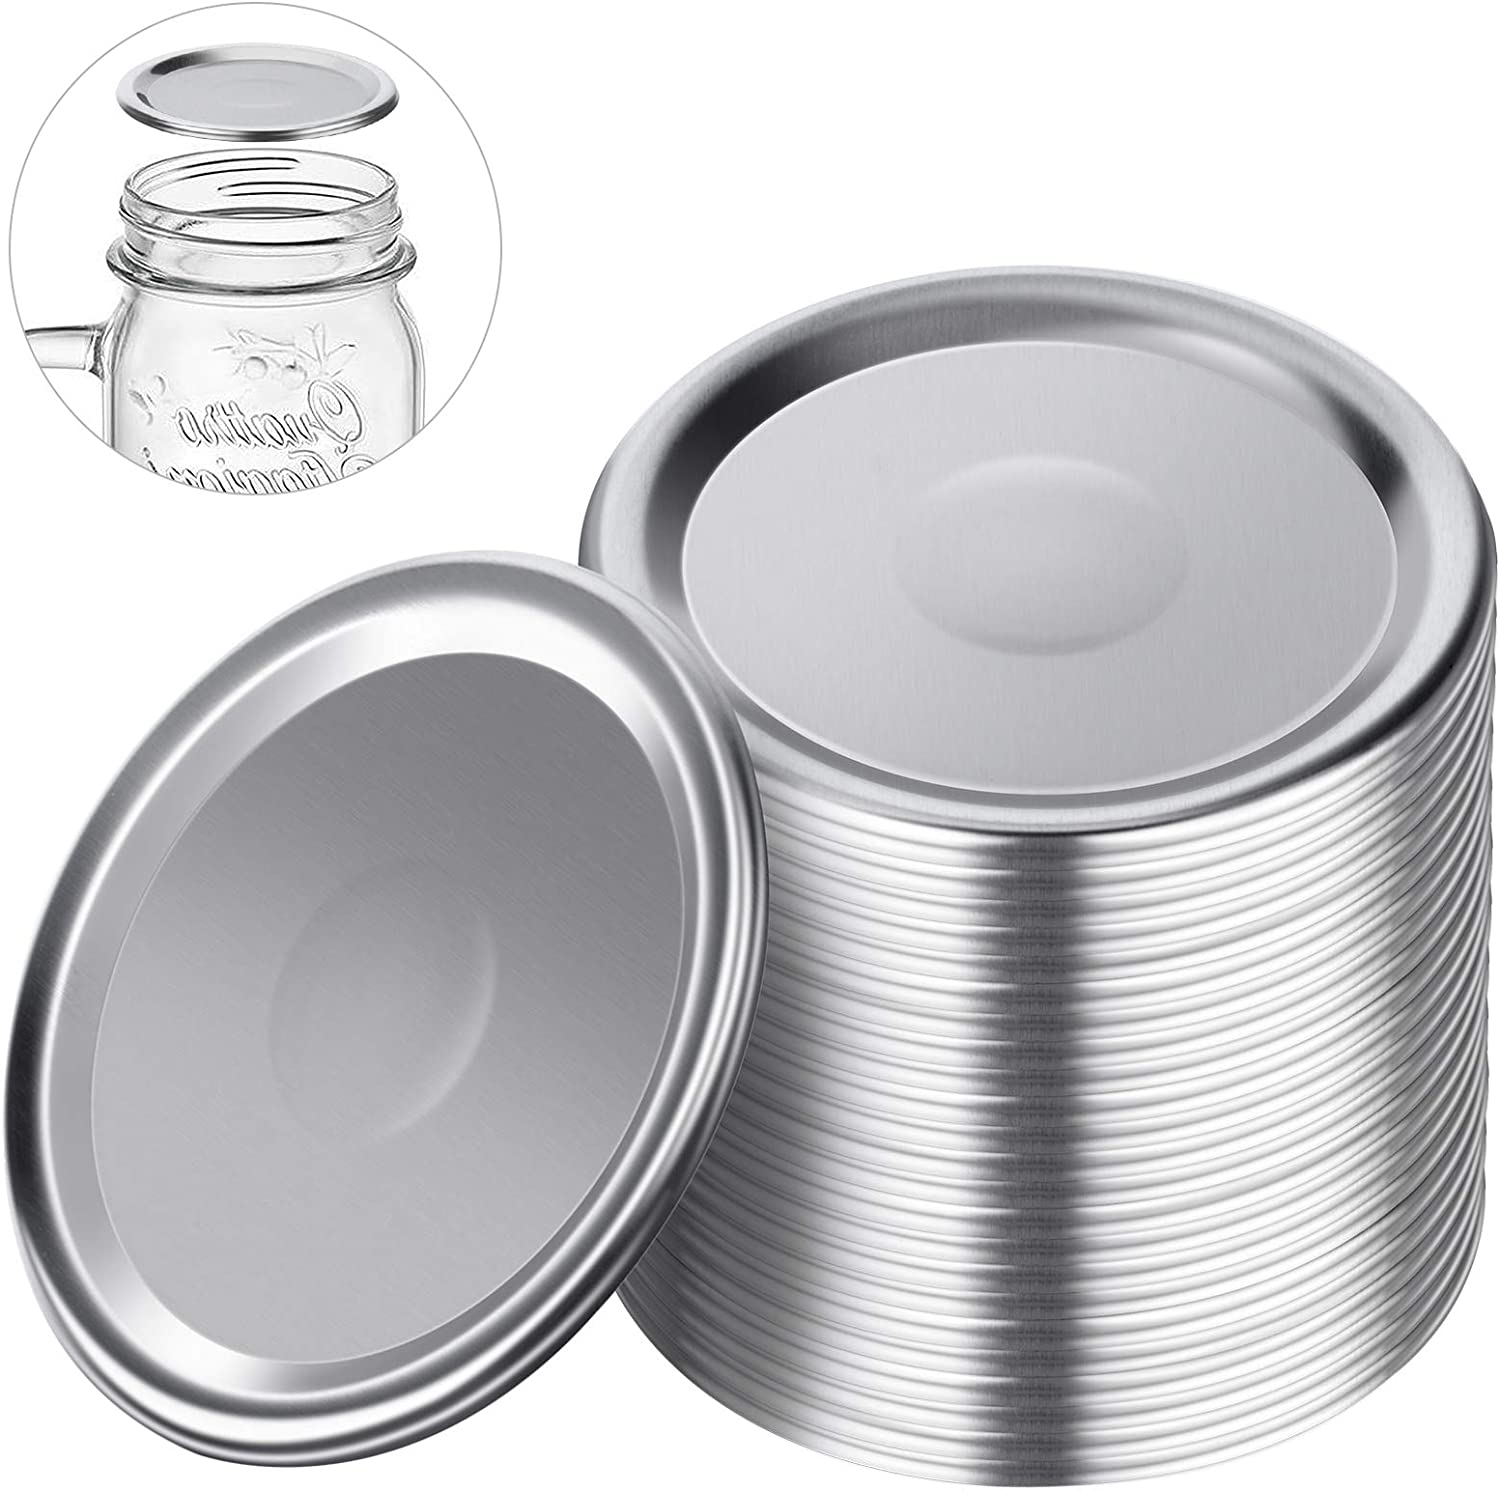 Mason jar lids regular mouth,Canning lids regular mouth.Canning flats regular mouth,Lids for Mason Jar Canning Lids (24 regular lids)